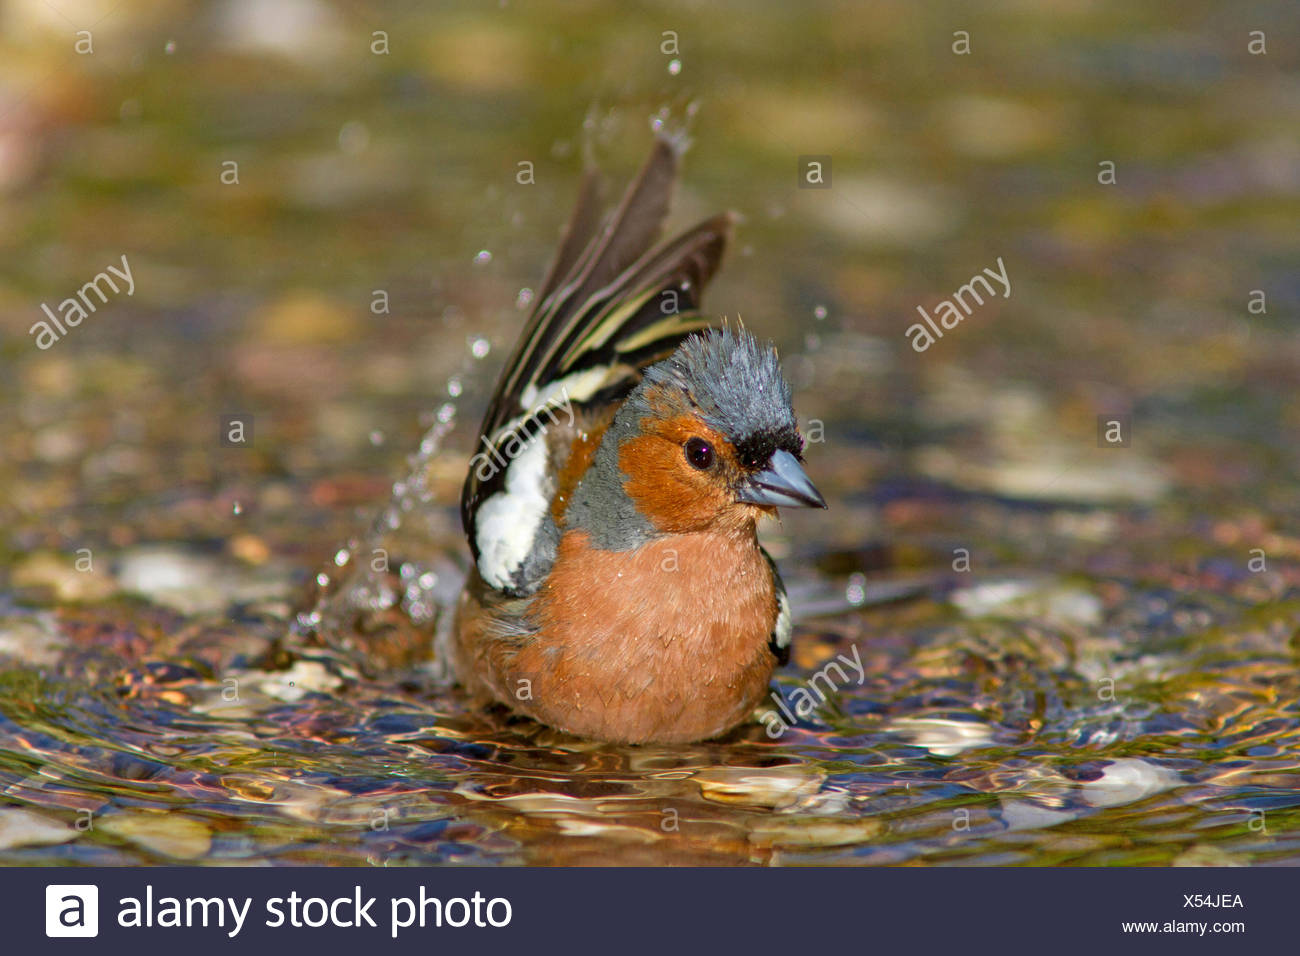 chaffinch (Fringilla coelebs), male bathing in shallow water, Germany, Mecklenburg-Western Pomerania - Stock Image